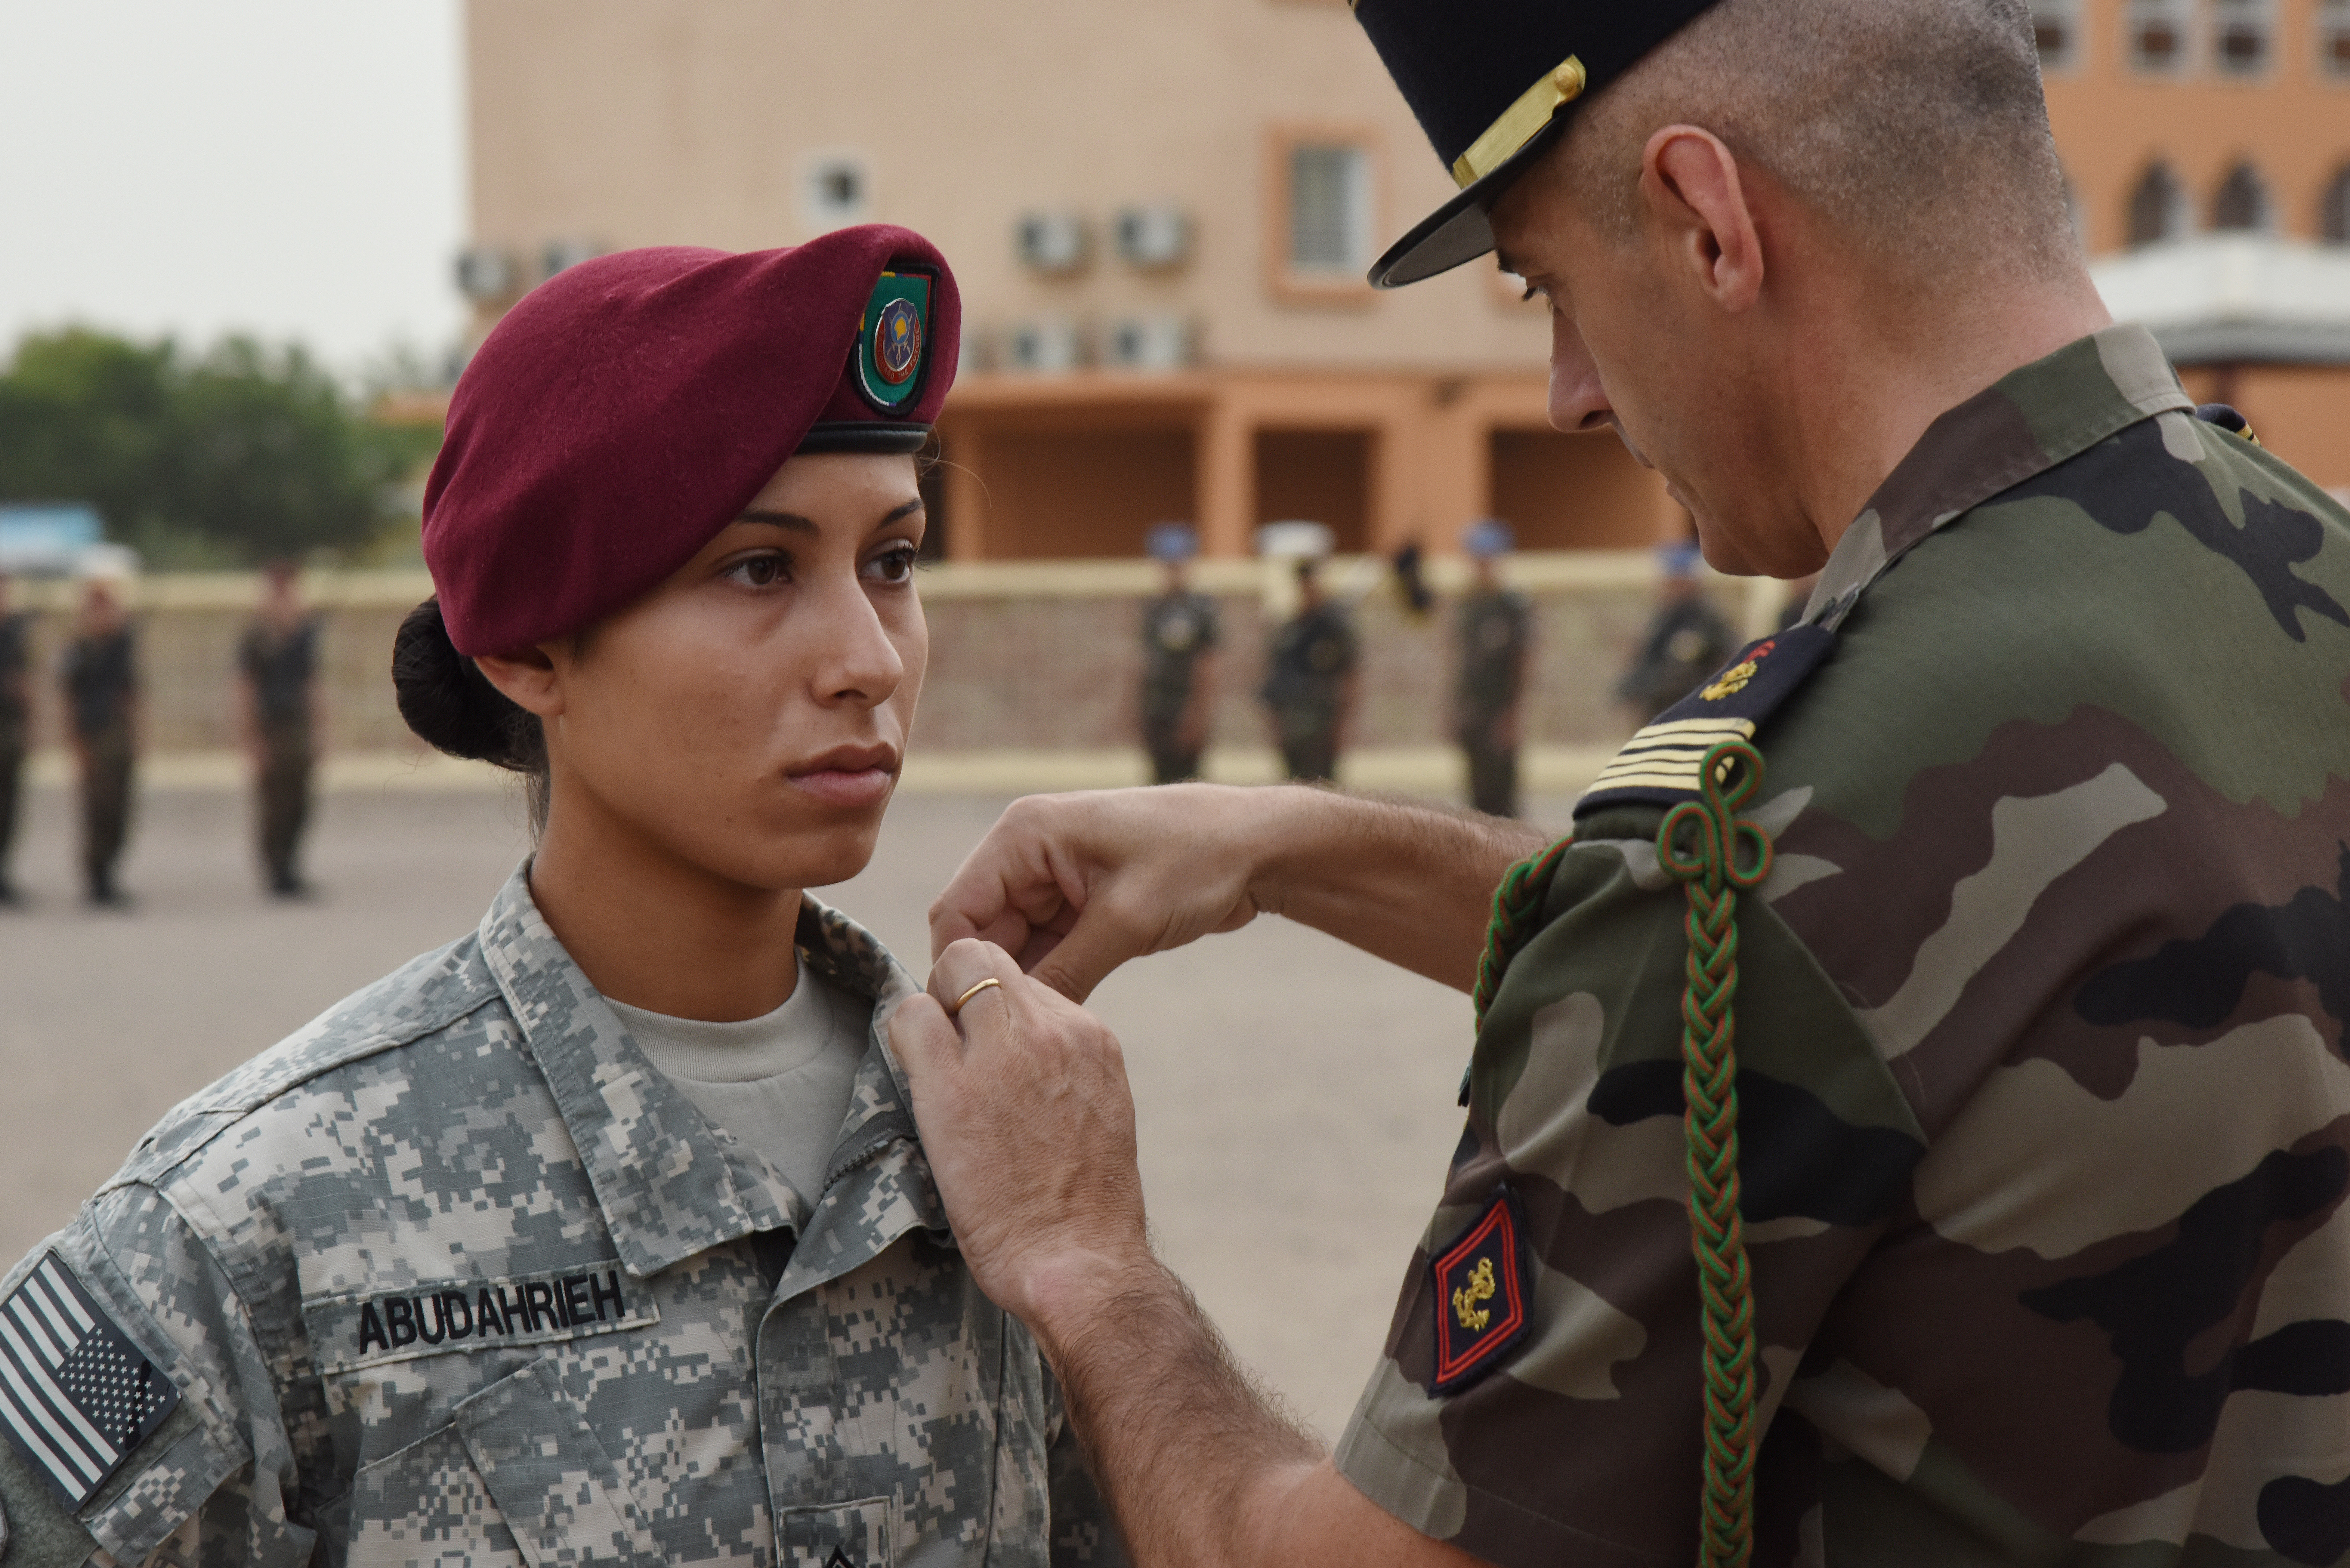 U.S. Army Sgt. Rawan Abudahrieh receives a National Defense Medal during an award ceremony at a Naval base in Djibouti, June 11, 2015, due to his life-saving medical care to a French service member during a catastrophic motor vehicle accident in February.  (U.S. Air Force photo by Staff Sgt. Maria Bowman)